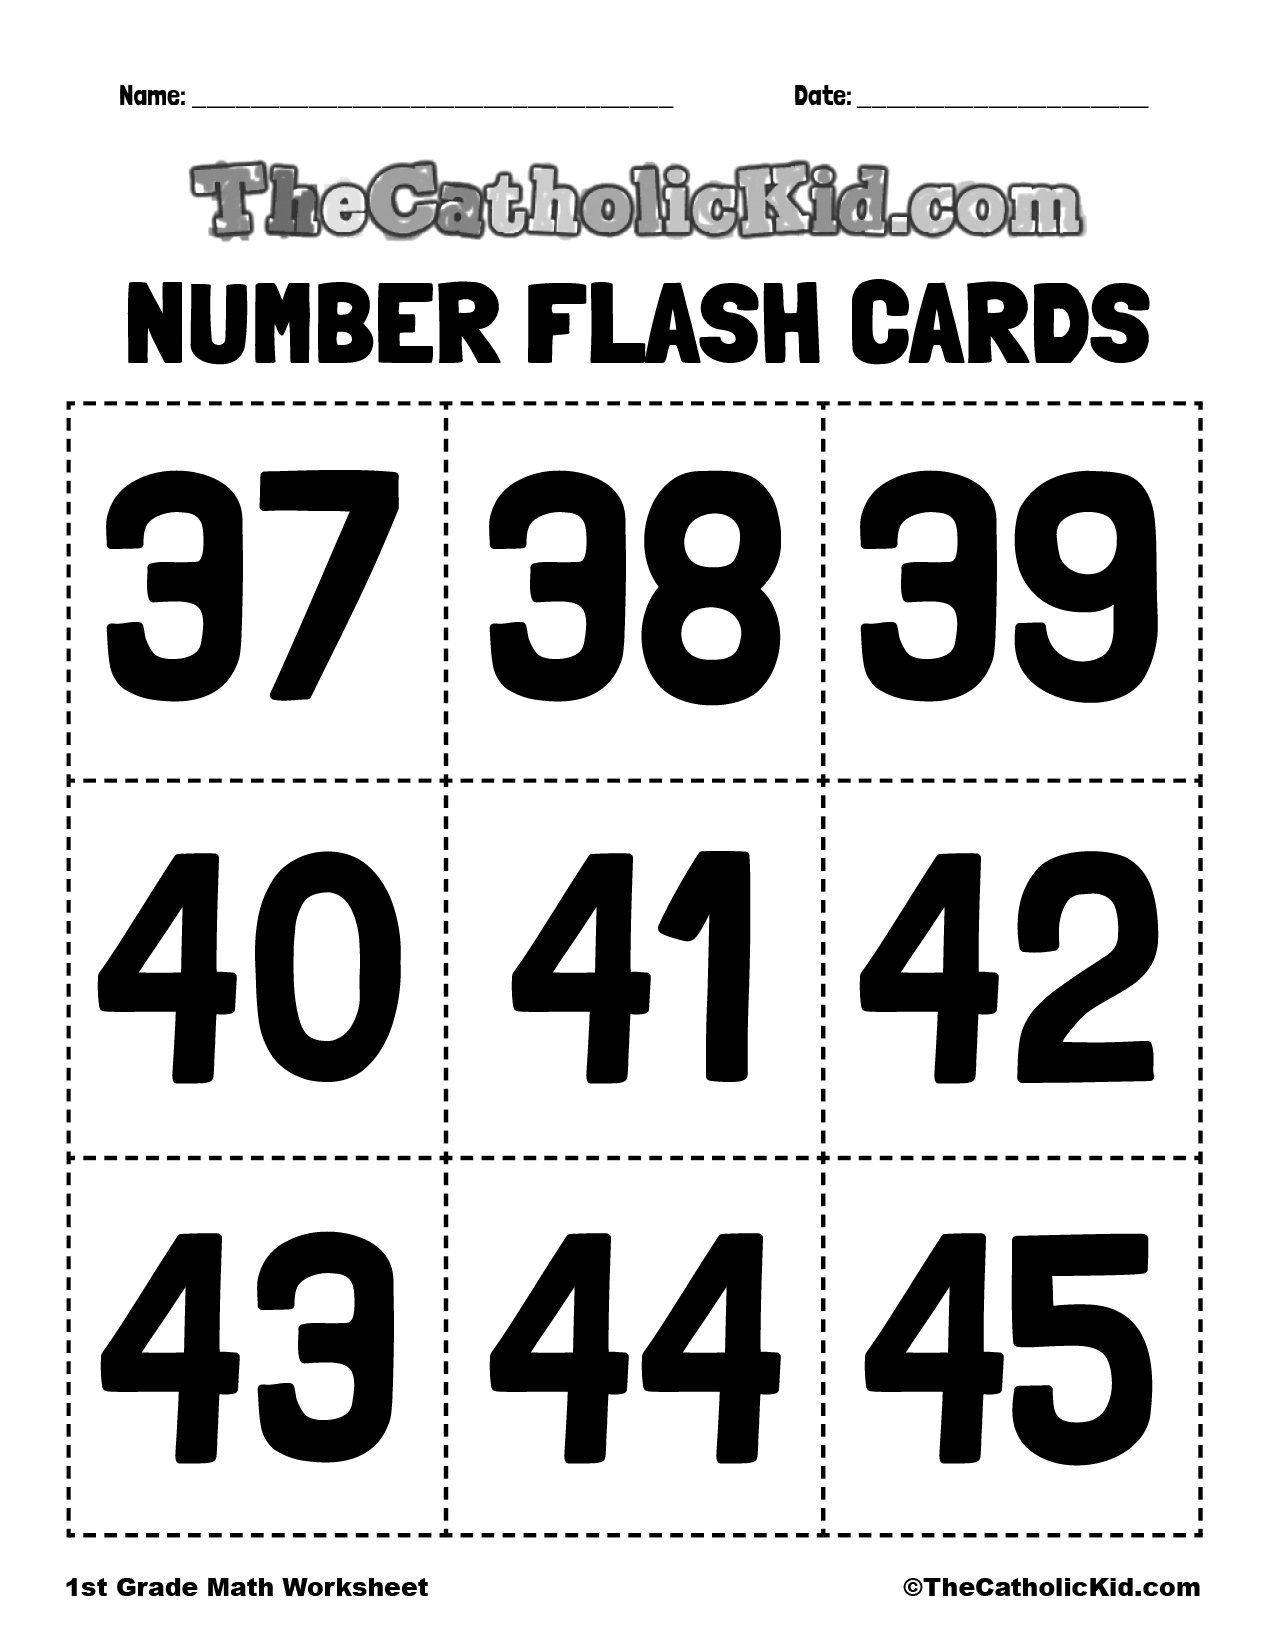 Number Flash Cards 37-45 - 1st Grade Math Worksheet Catholic